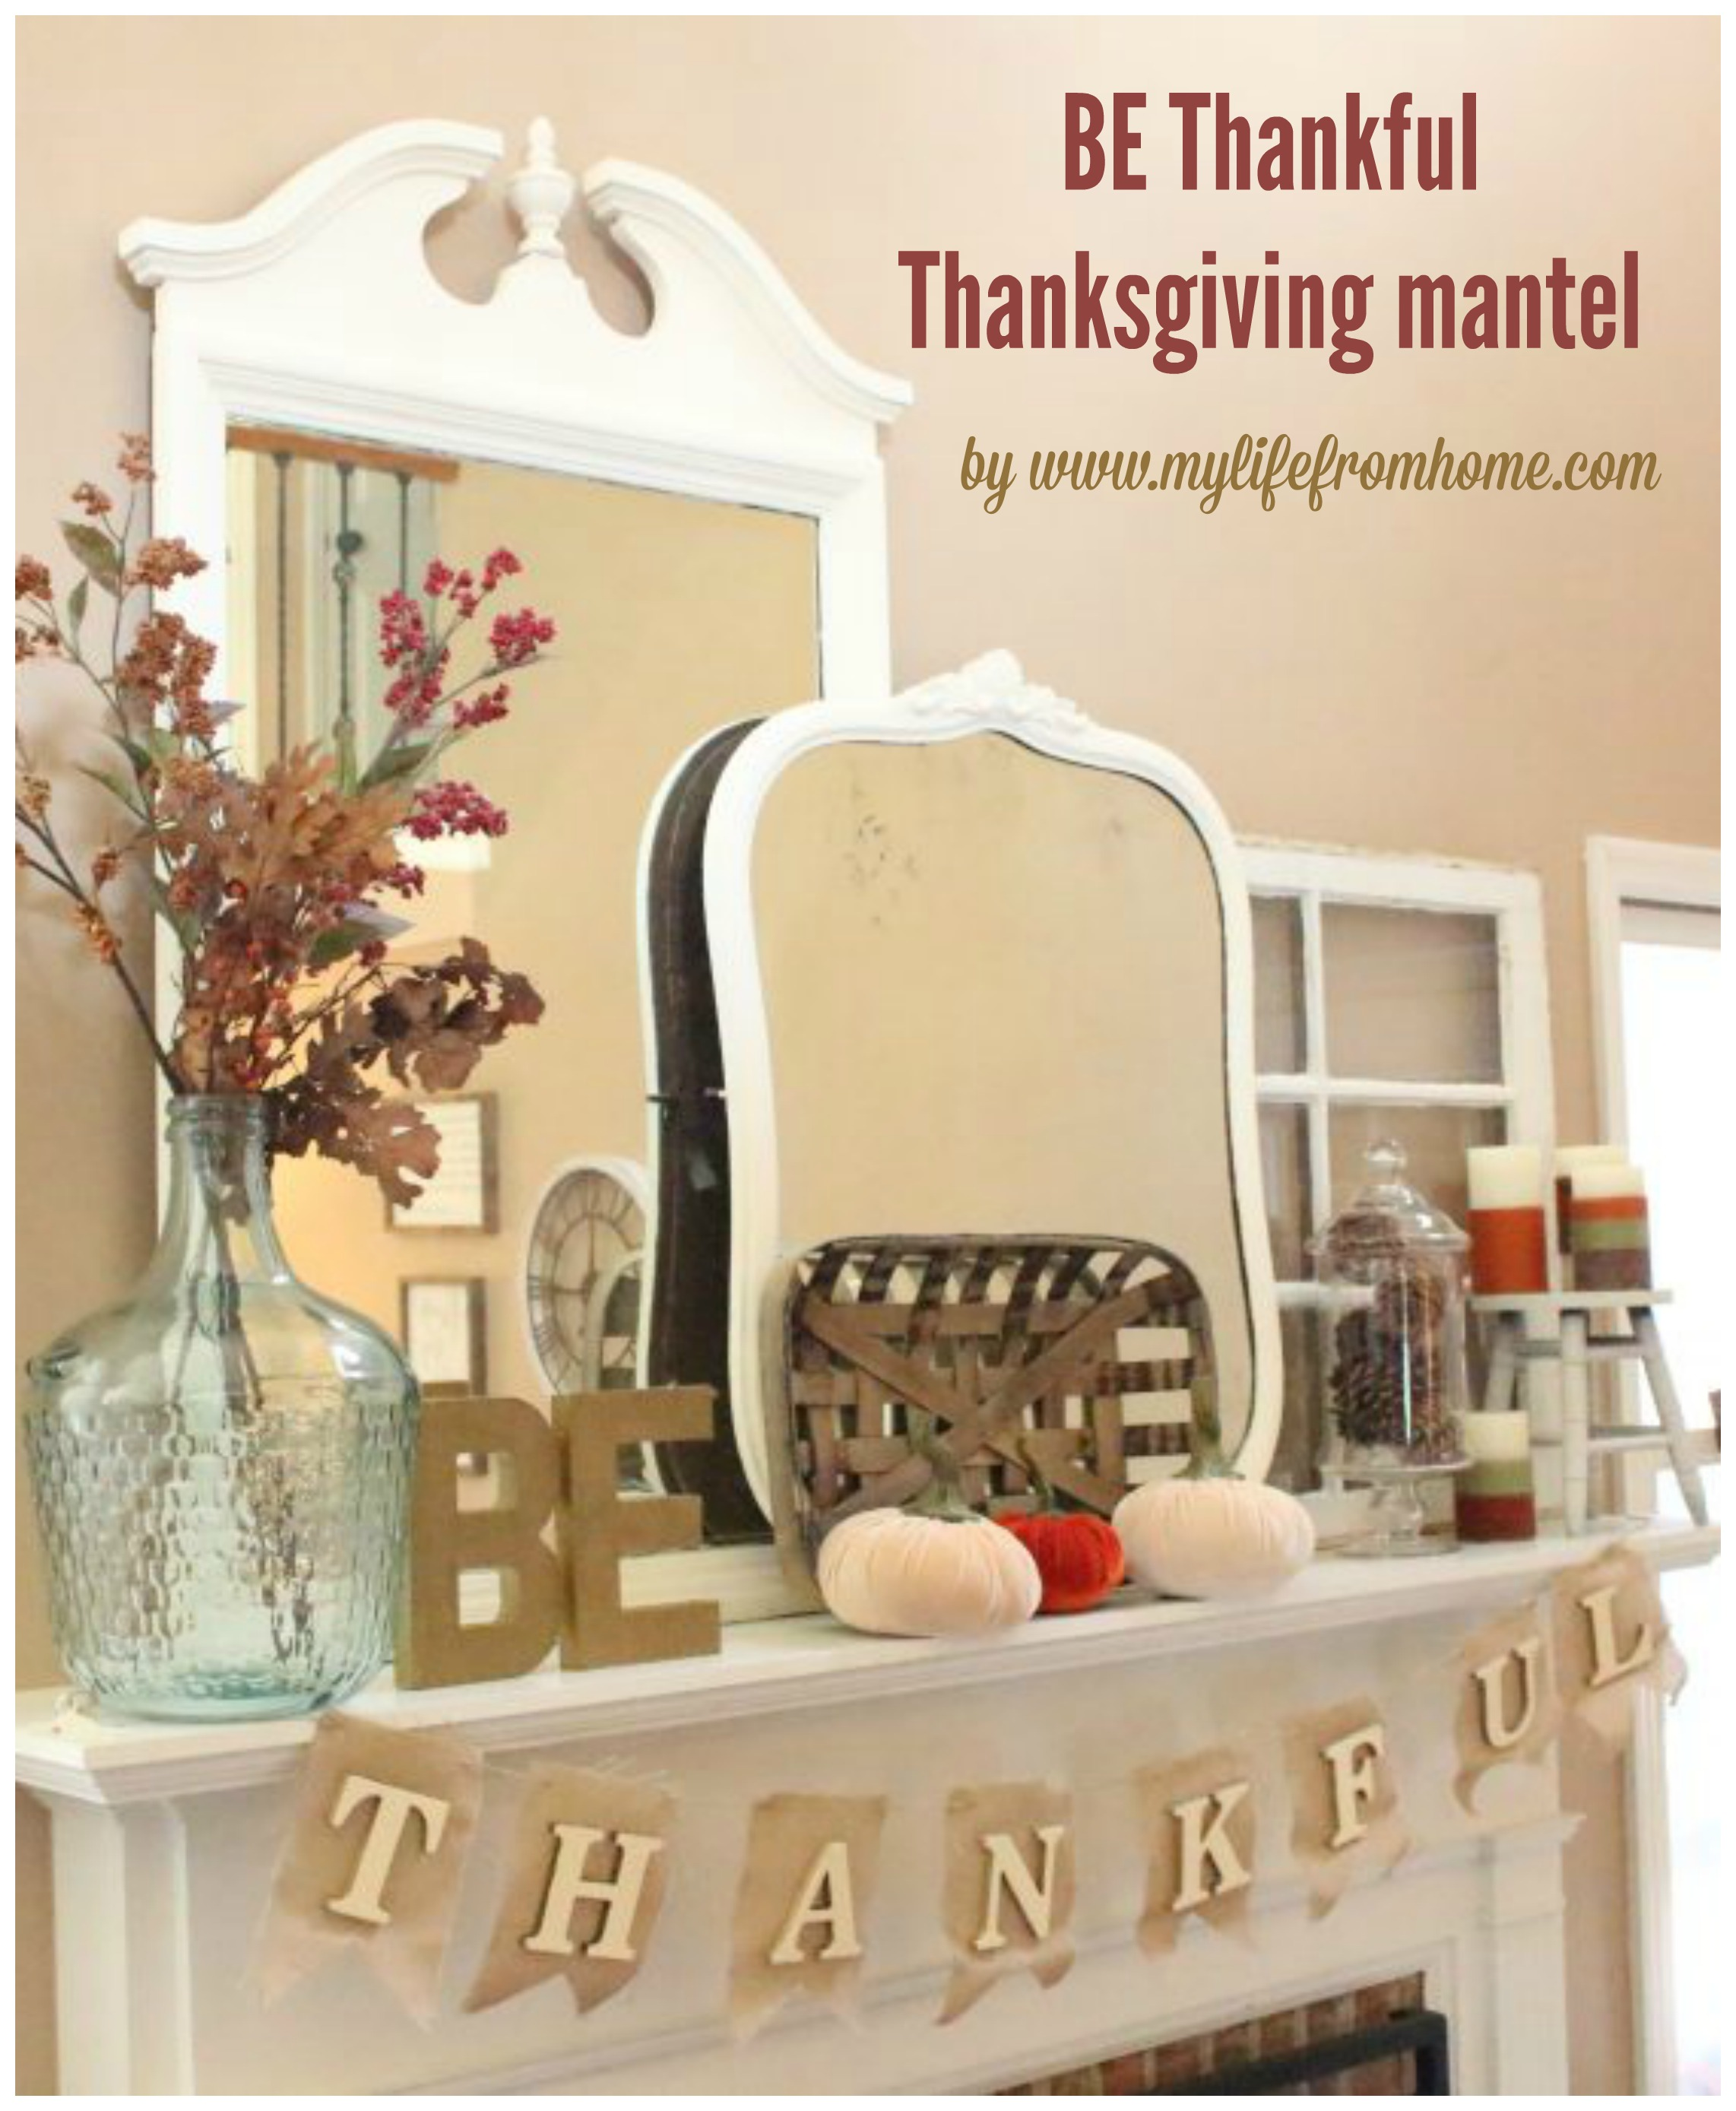 be-thankful-thanksgiving-mantel-seasonal-decorating-thanksgiving-mantel-decor-thanksgiving-mantel-mantle-fall-mantel-fall-autumn-decor-ideas-for-decorating-a-mantel-be-thankful-banner-diy-g